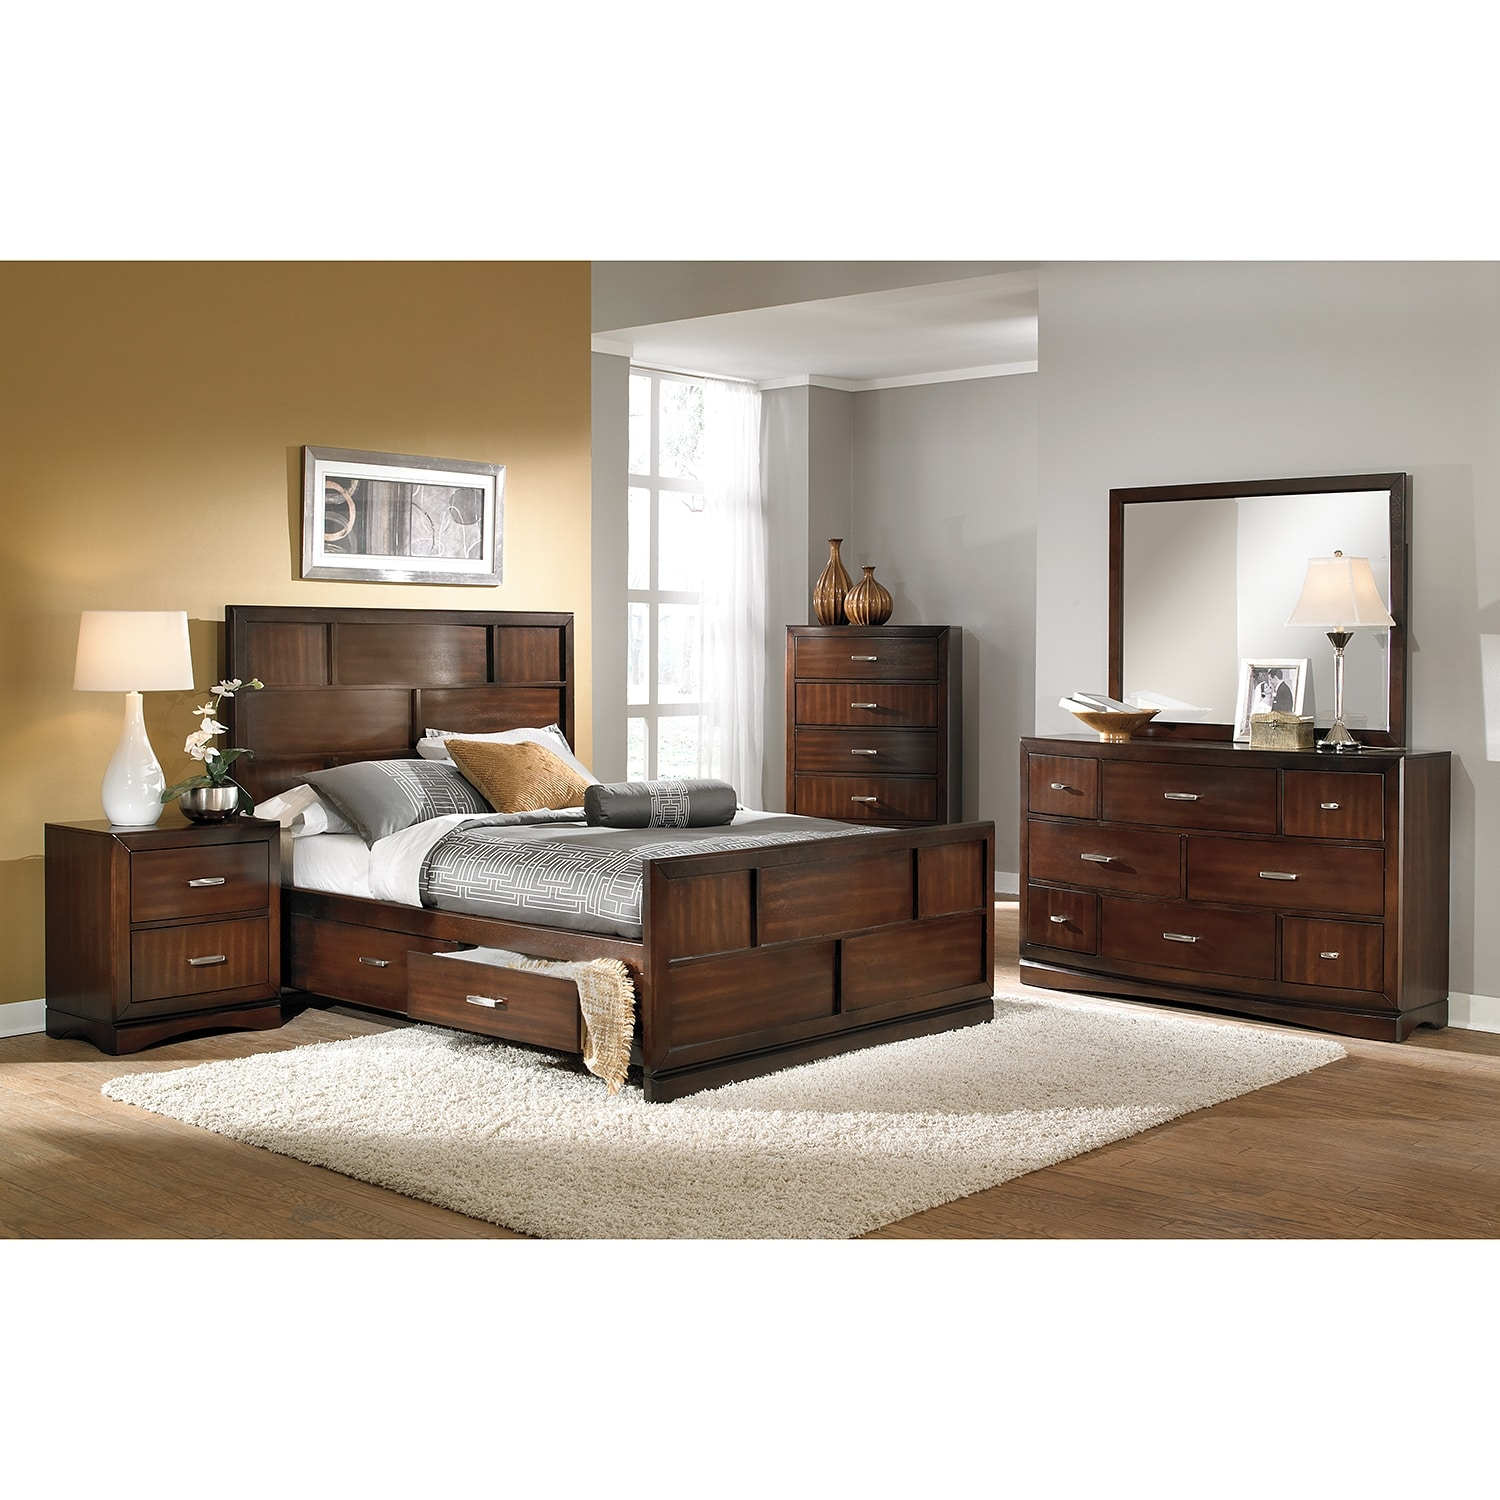 Toronto queen storage bed pecan american signature for Signature furniture